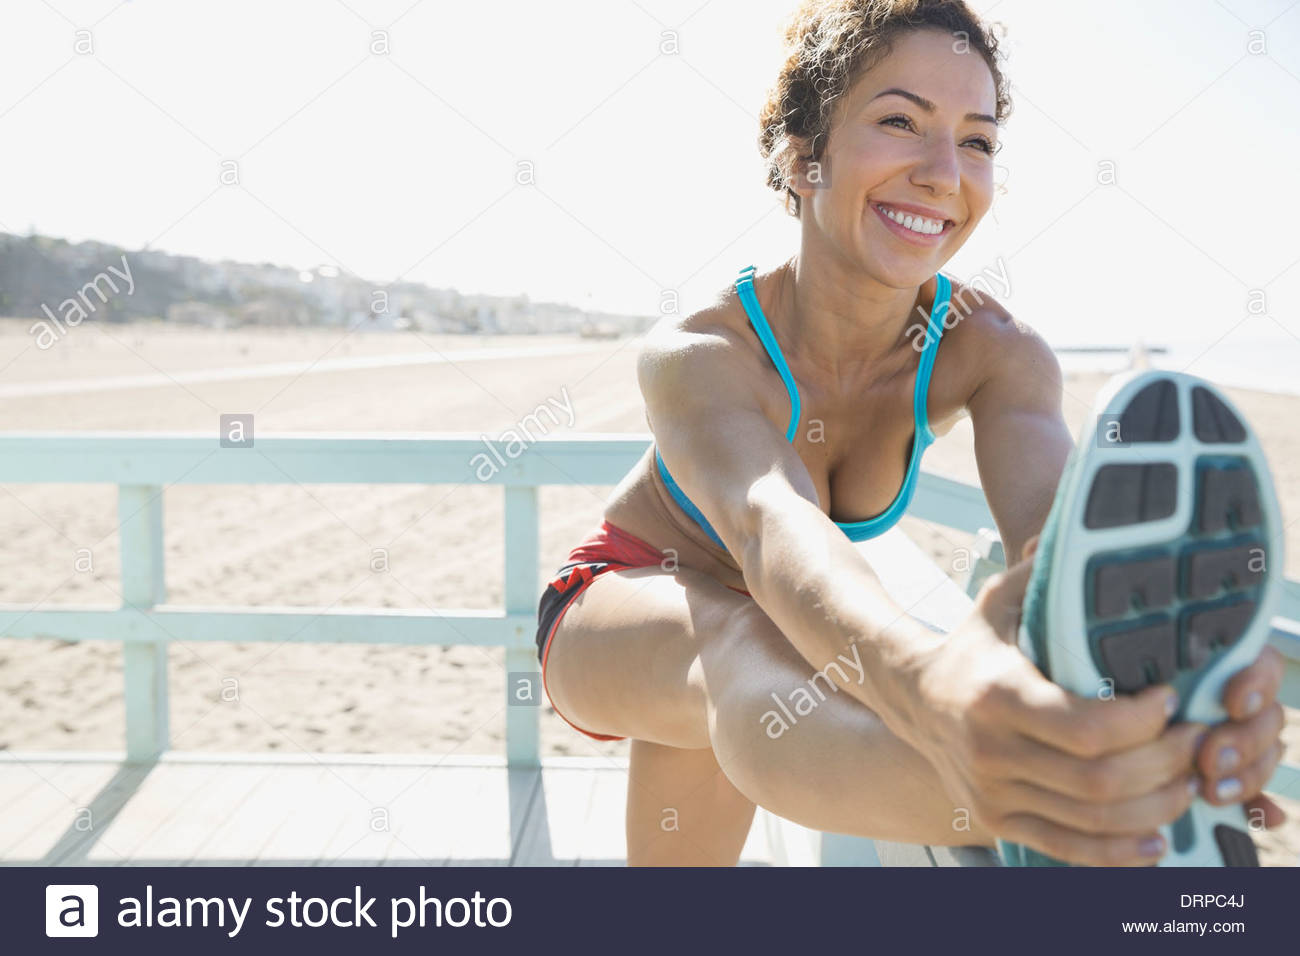 Woman stretching legs before workout - Stock Image